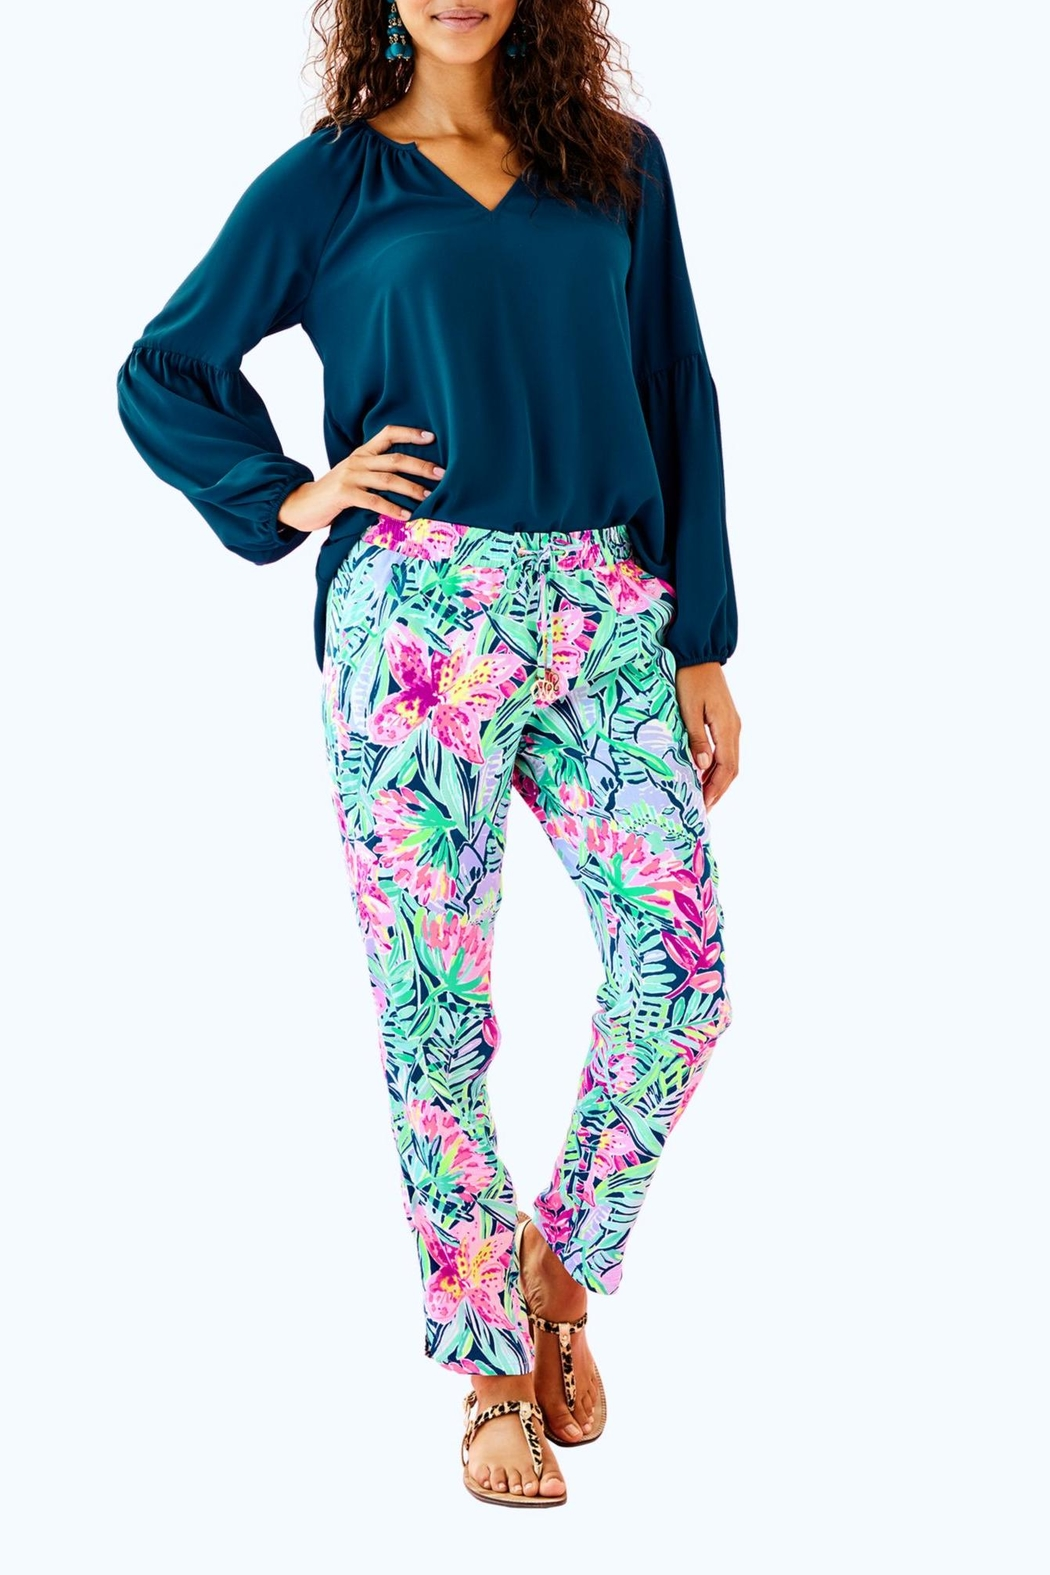 Lilly Pulitzer Piper Crop Pant from Sandestin Golf and Beach Resort ... 71fb63efd49e5